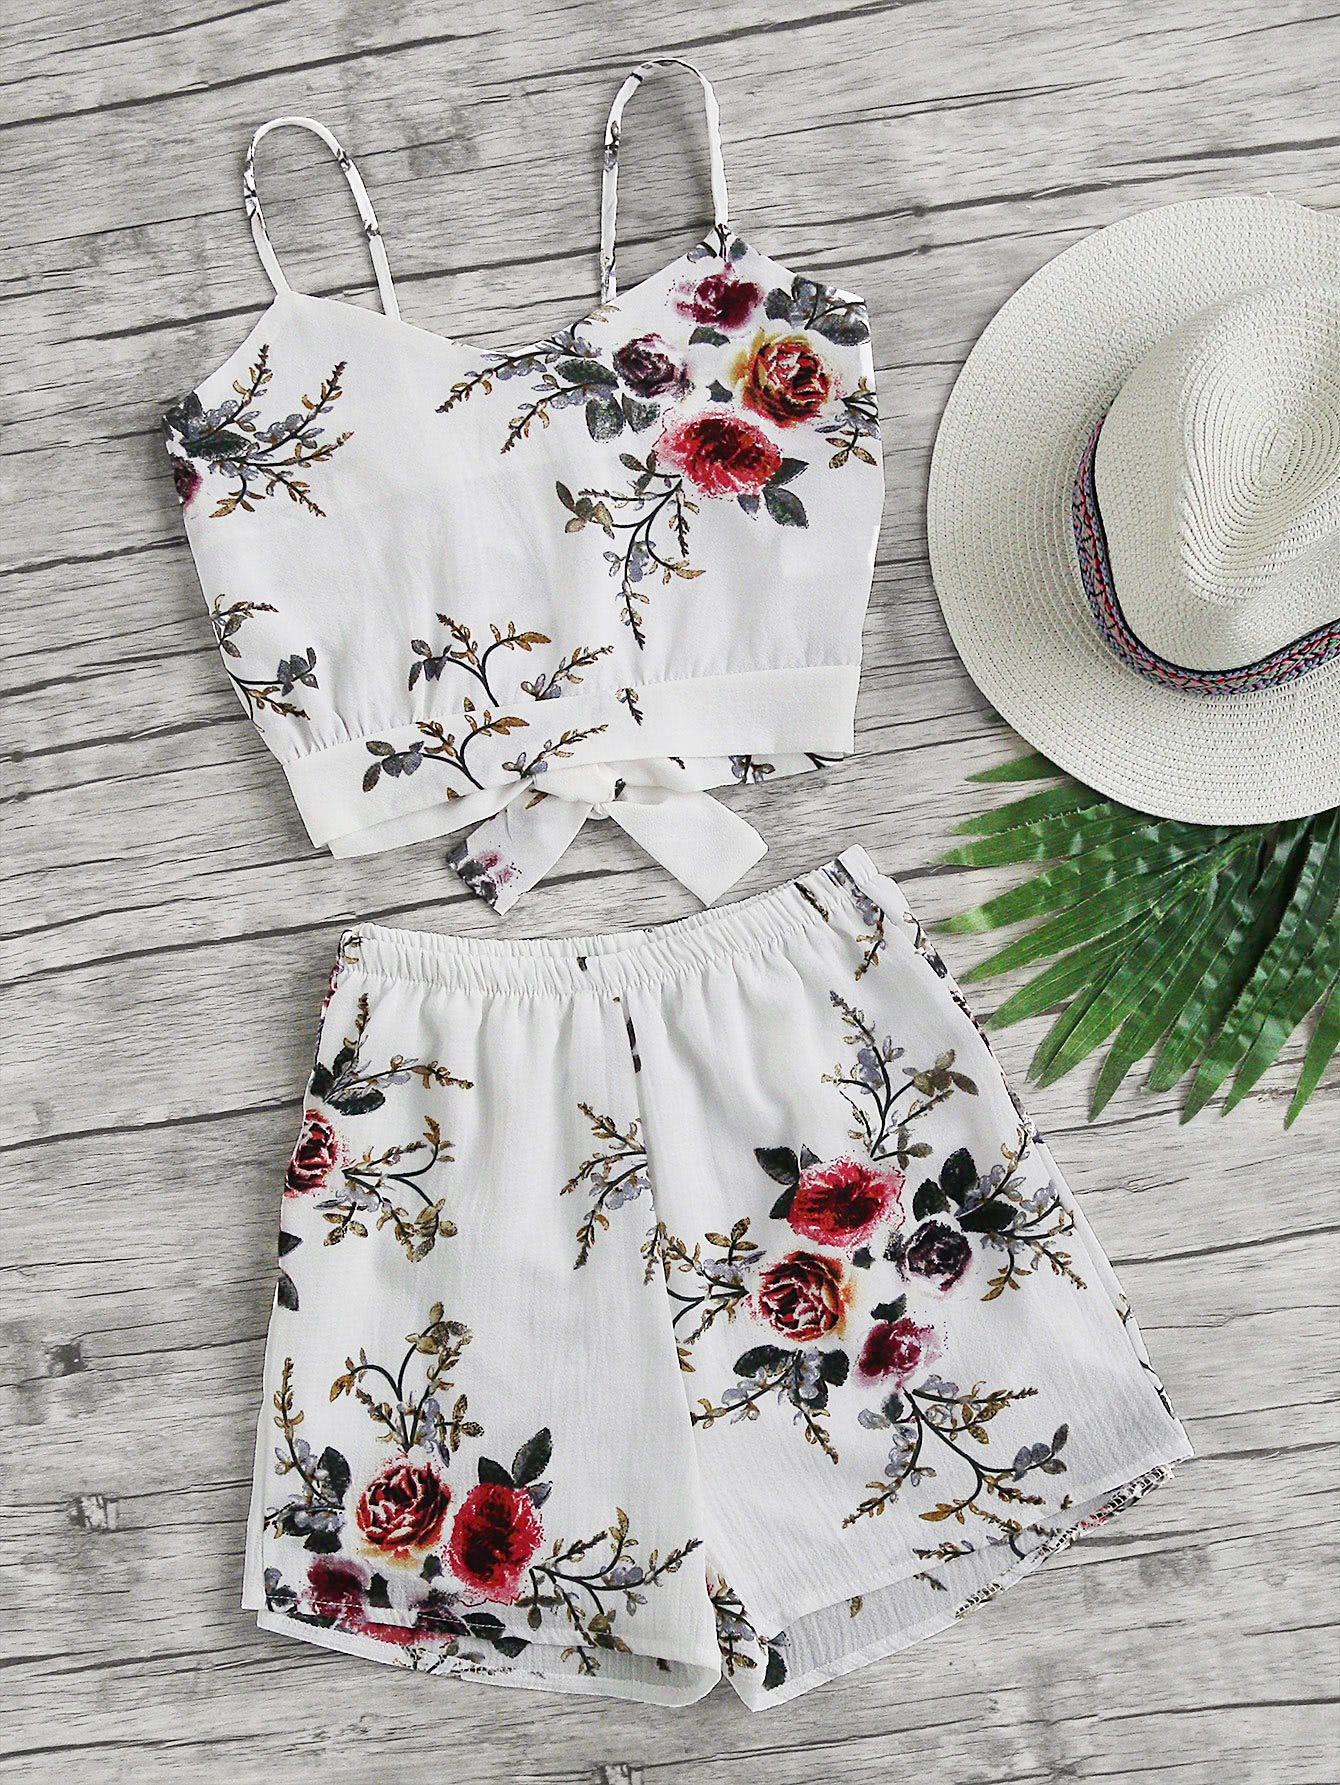 Floral Print Random Split Bow Tie Back Cami Top With Shorts lace panel criss cross bow tie back cami top with floral shorts